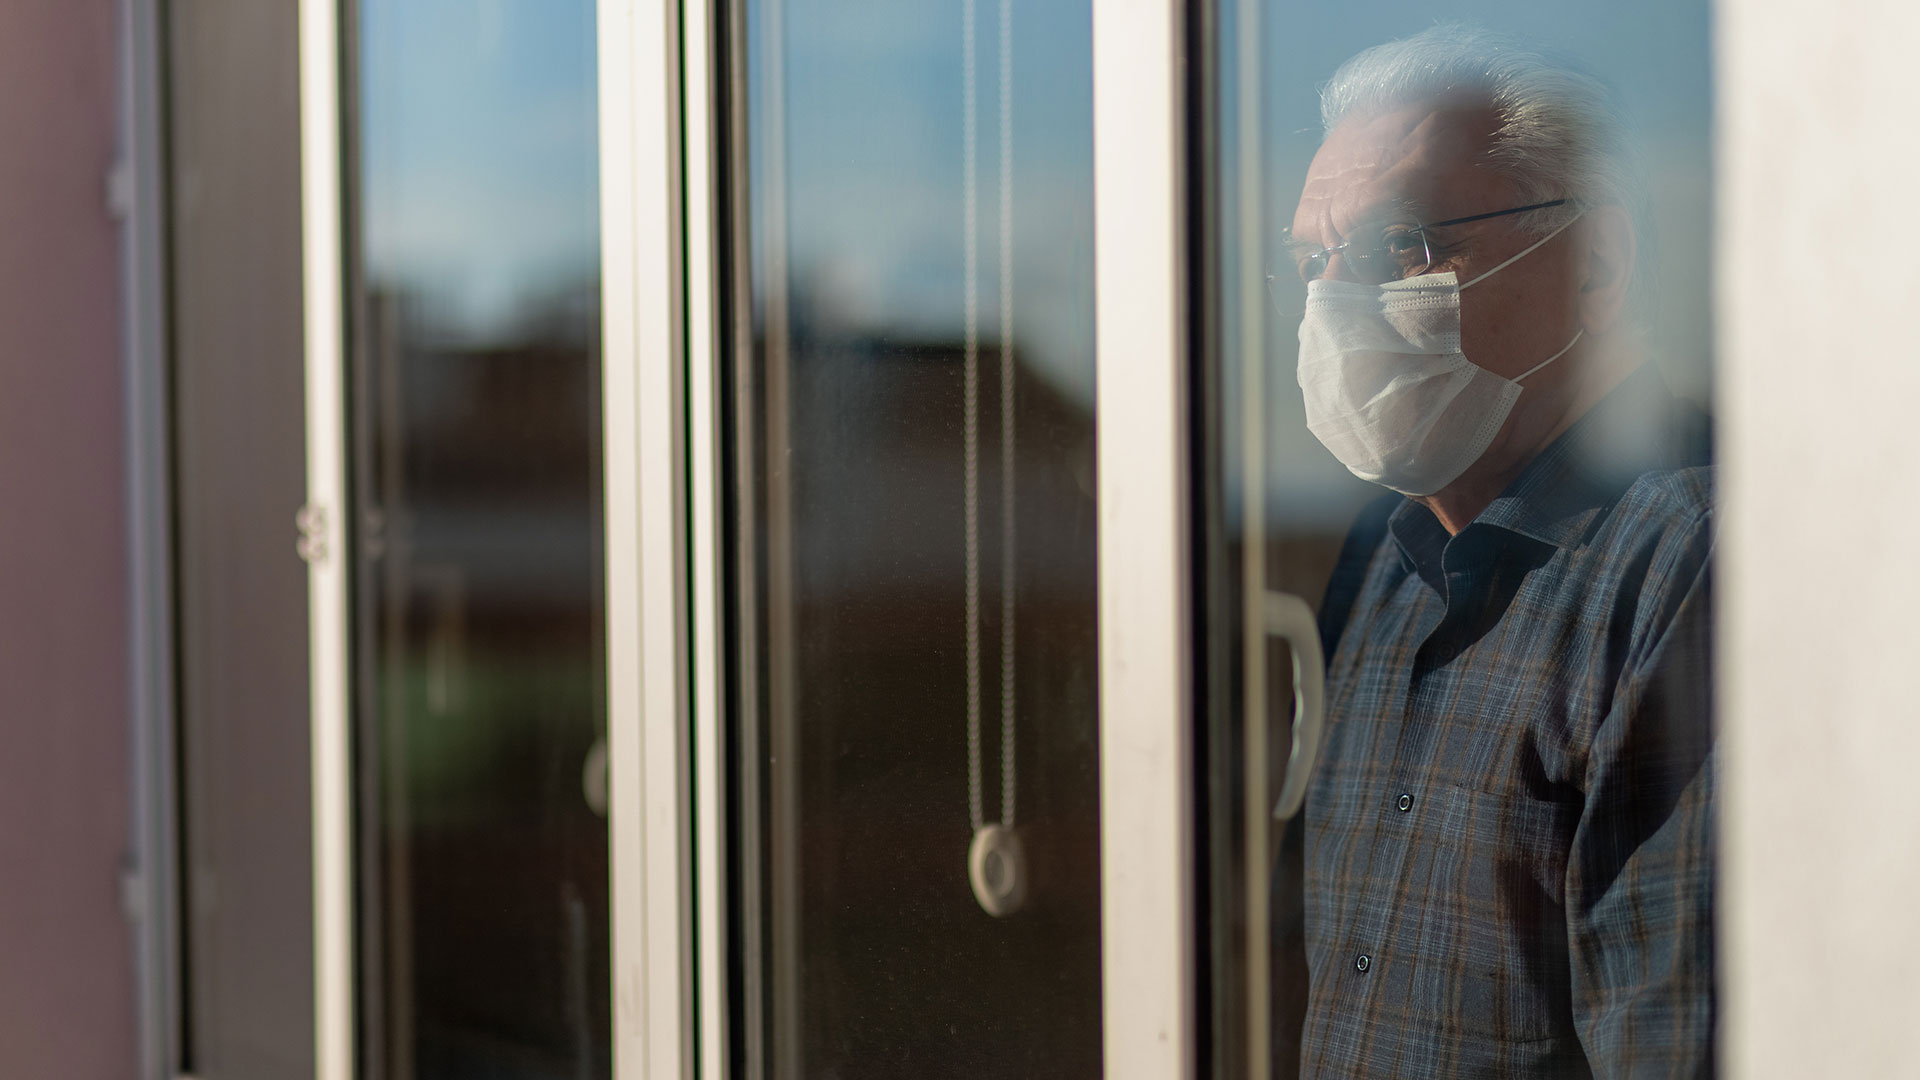 The coronavirus pandemic presents some unique challenges for the senior population. A  geriatrician from Atrium Health explains how caregivers can be there for seniors during this difficult time.